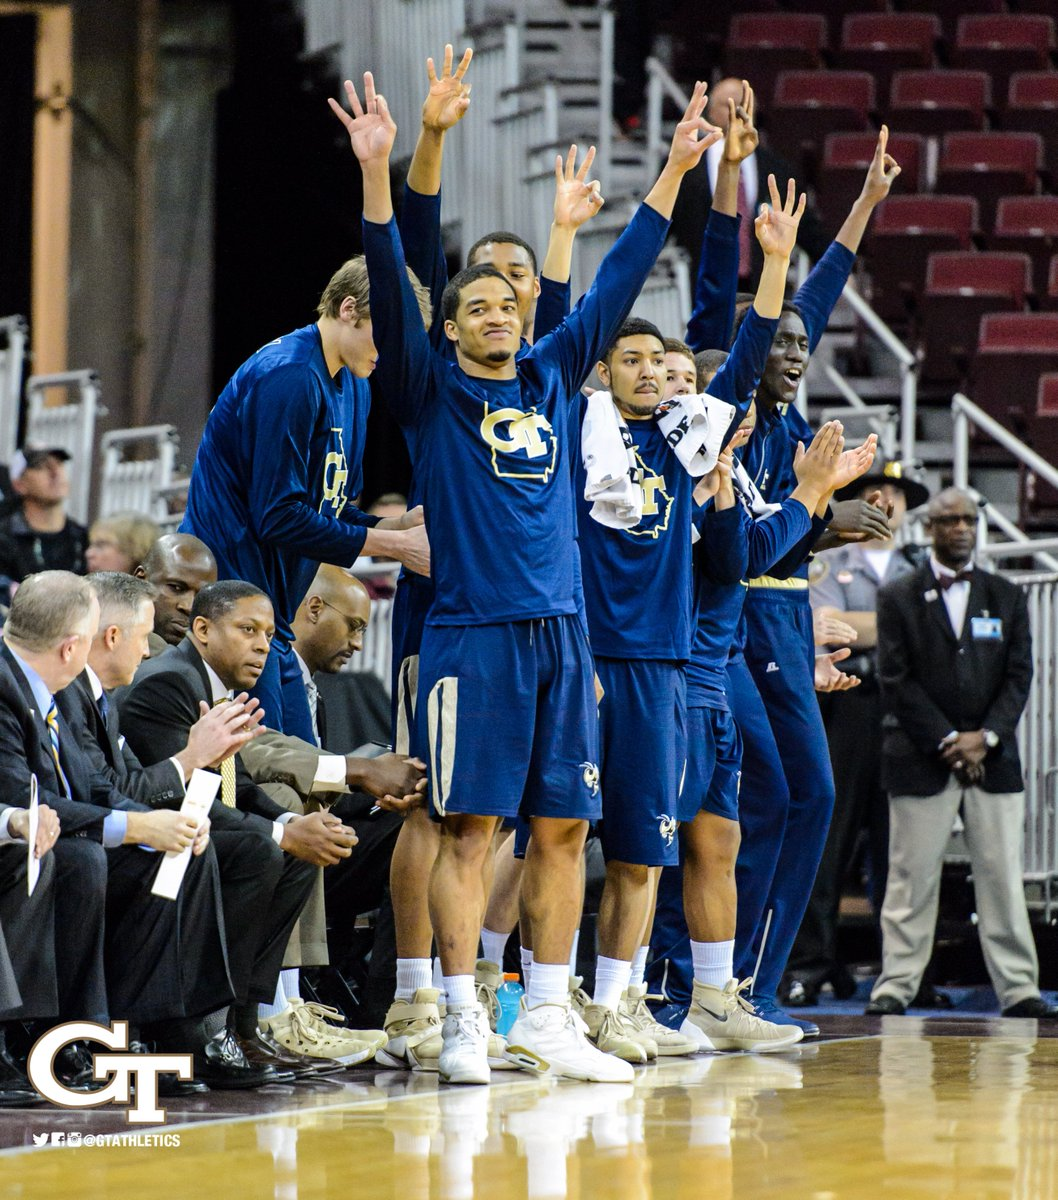 TOTAL DOMINATION! Jackets ADVANCE in #NIT with 83-66 win over Gamecocks! We're heading WEST! #TogetherWeSwarm https://t.co/qpXMd8hLWY